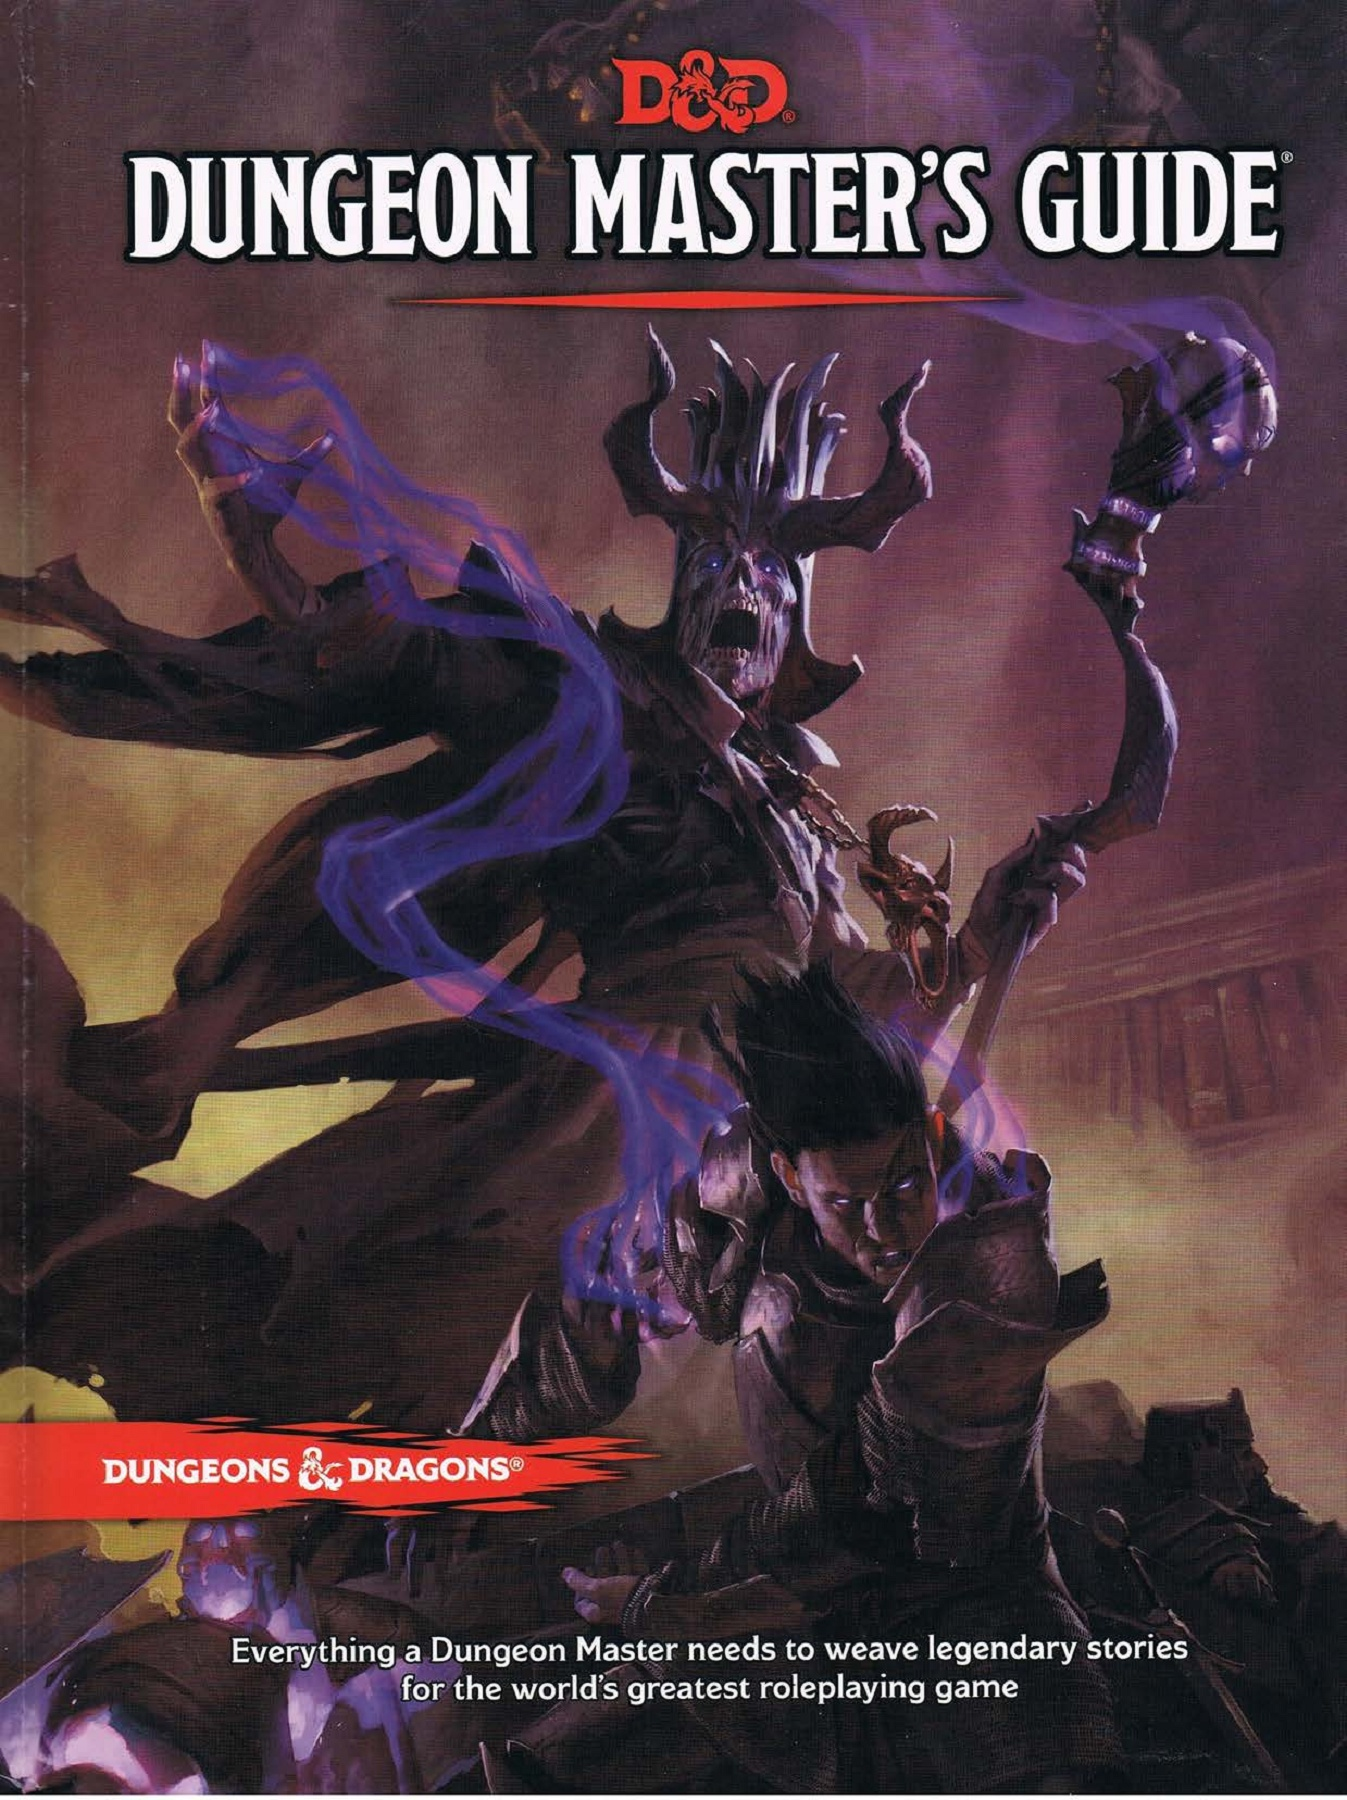 DnD Dungeon Master Manual 5e Pages 201 - 250 - Text Version